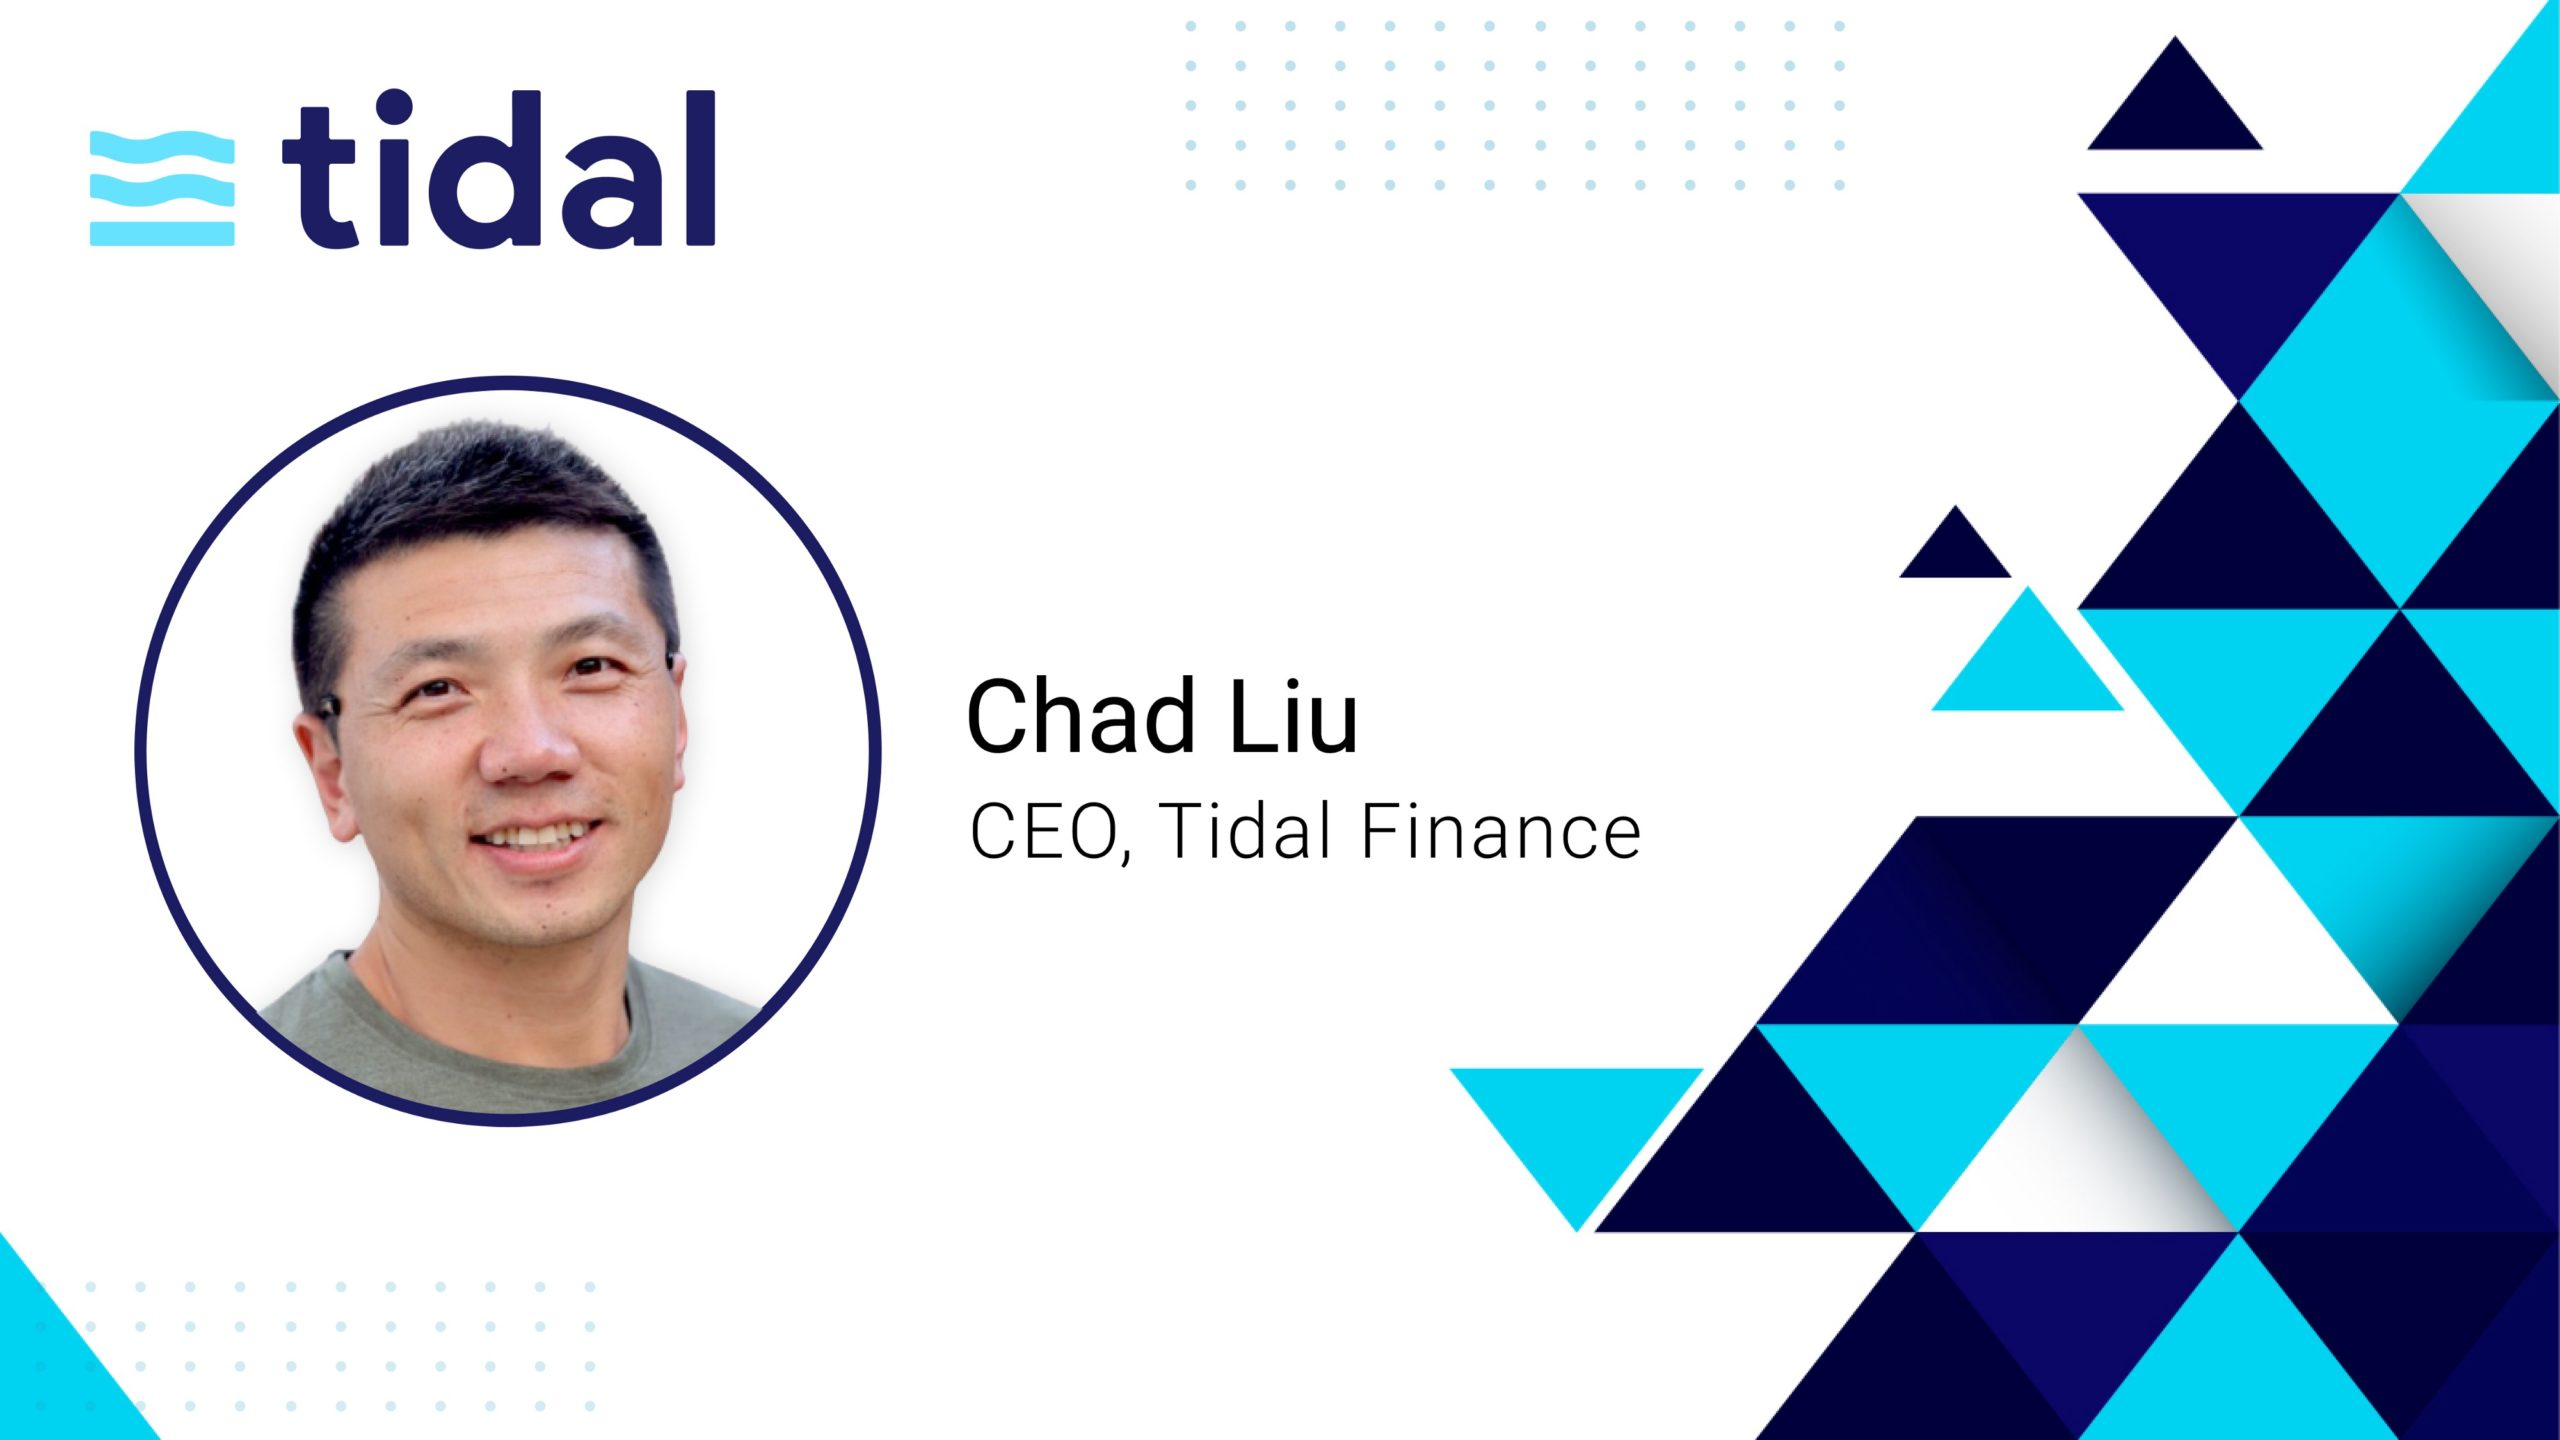 Fireside Chat with Chad Liu, CEO of Tidal Finance